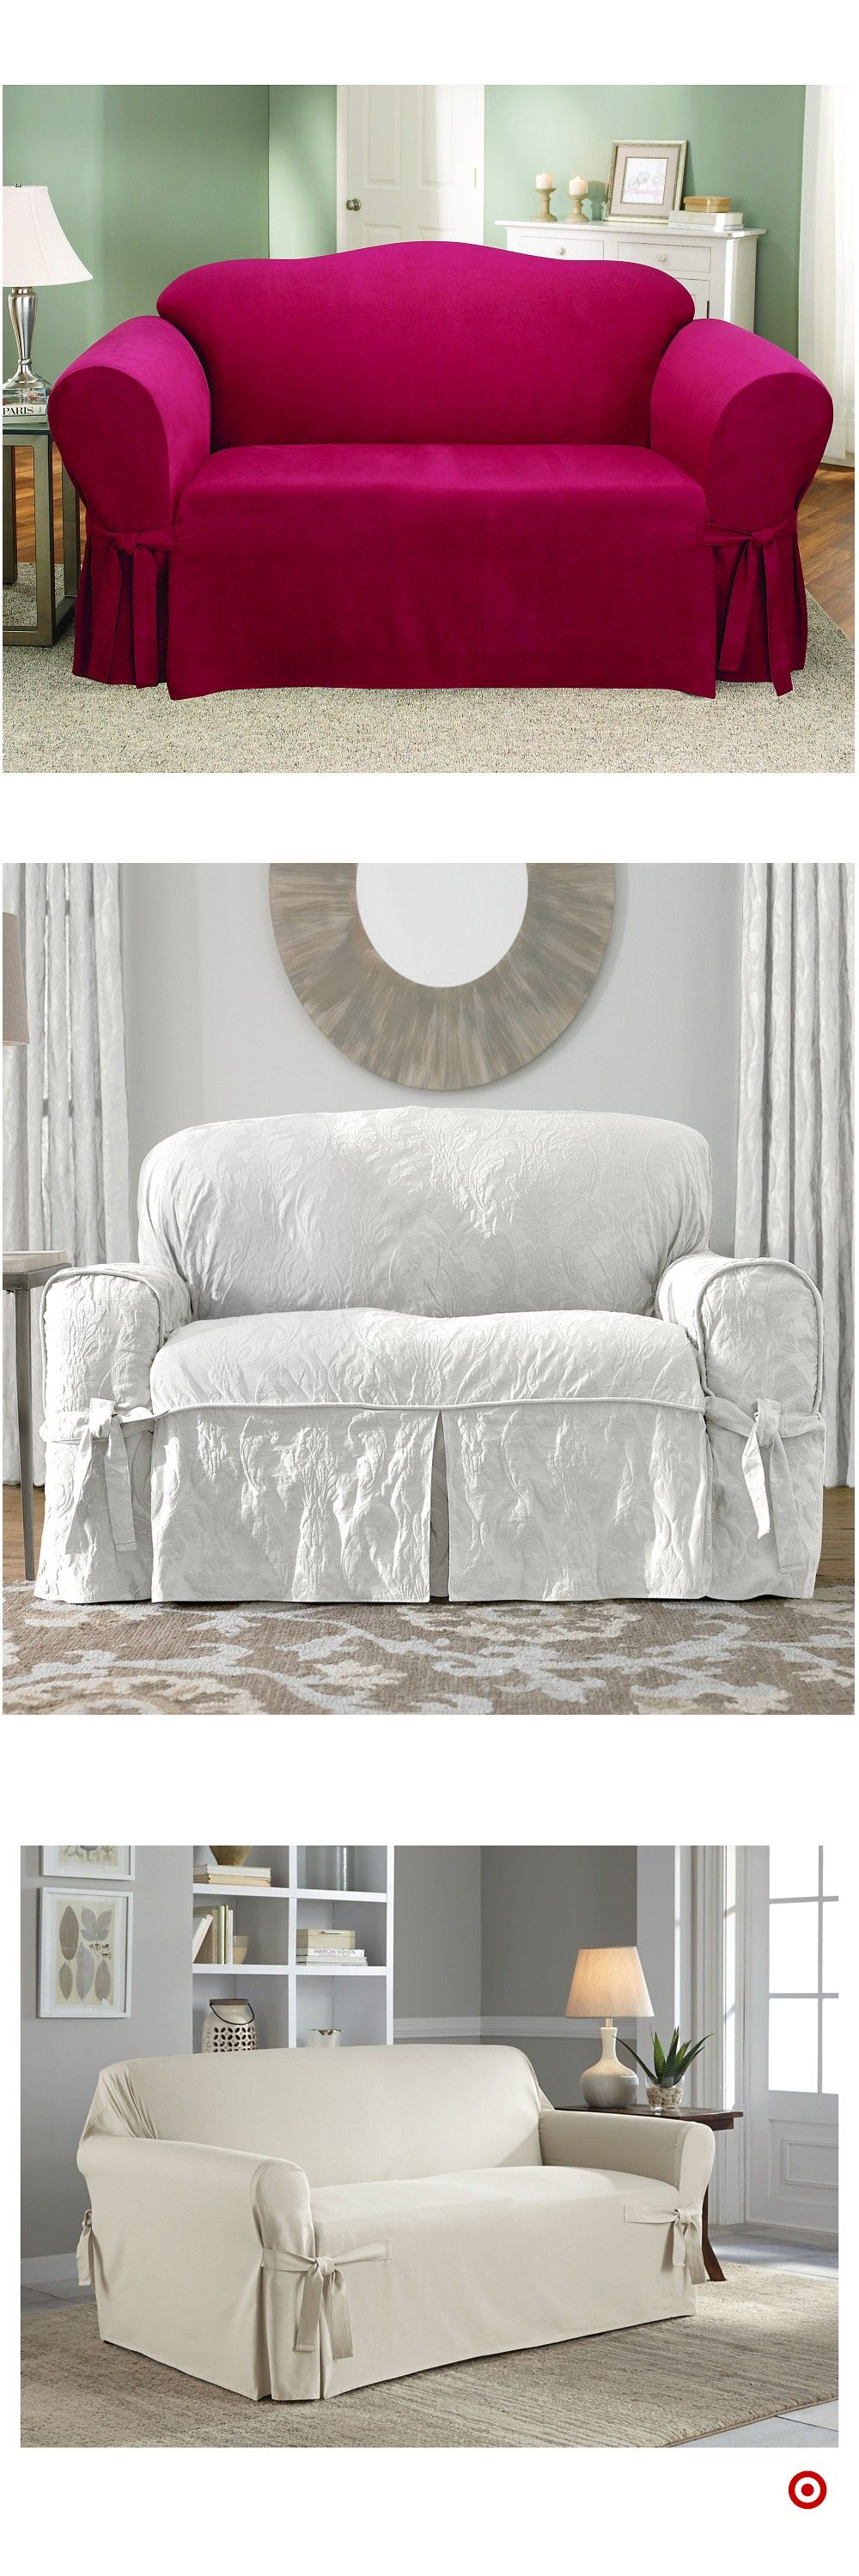 sofa covers low price bed houston tx shop target for loveseat slipcover you will love at great prices free shipping on orders of 35 or same day pick up in store